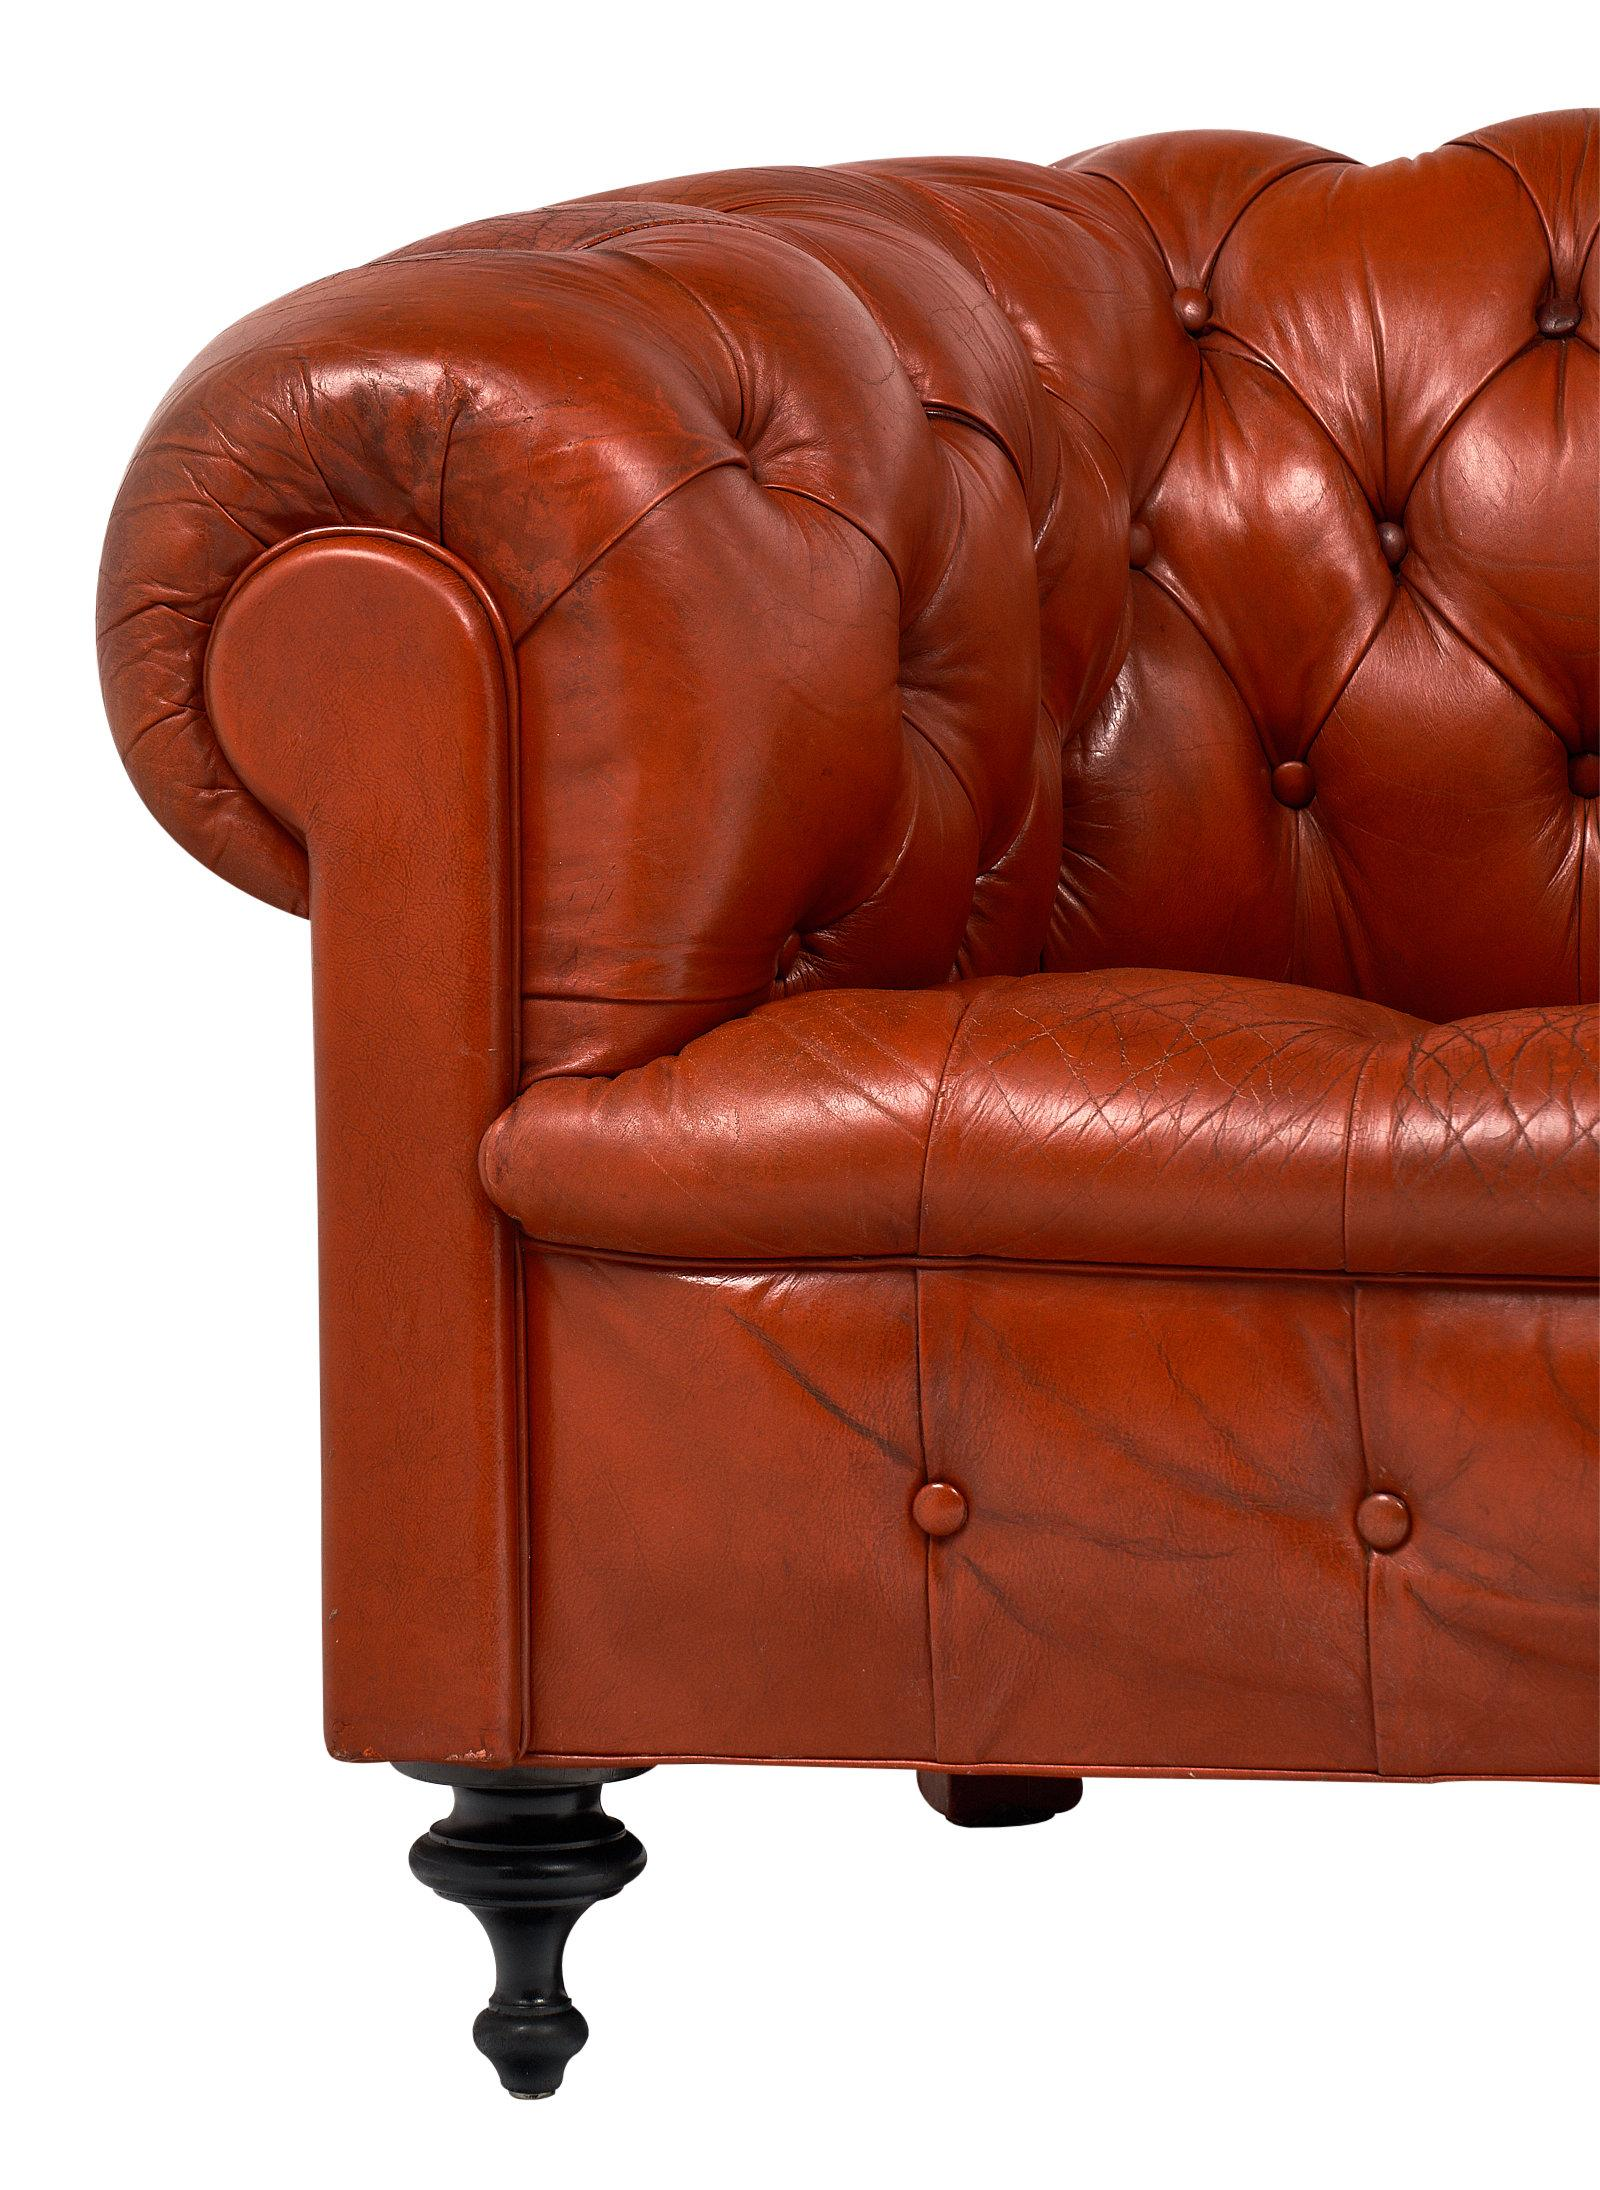 Chesterfield Sofa And Chair Orange Leather Vintage Chesterfield Sofa